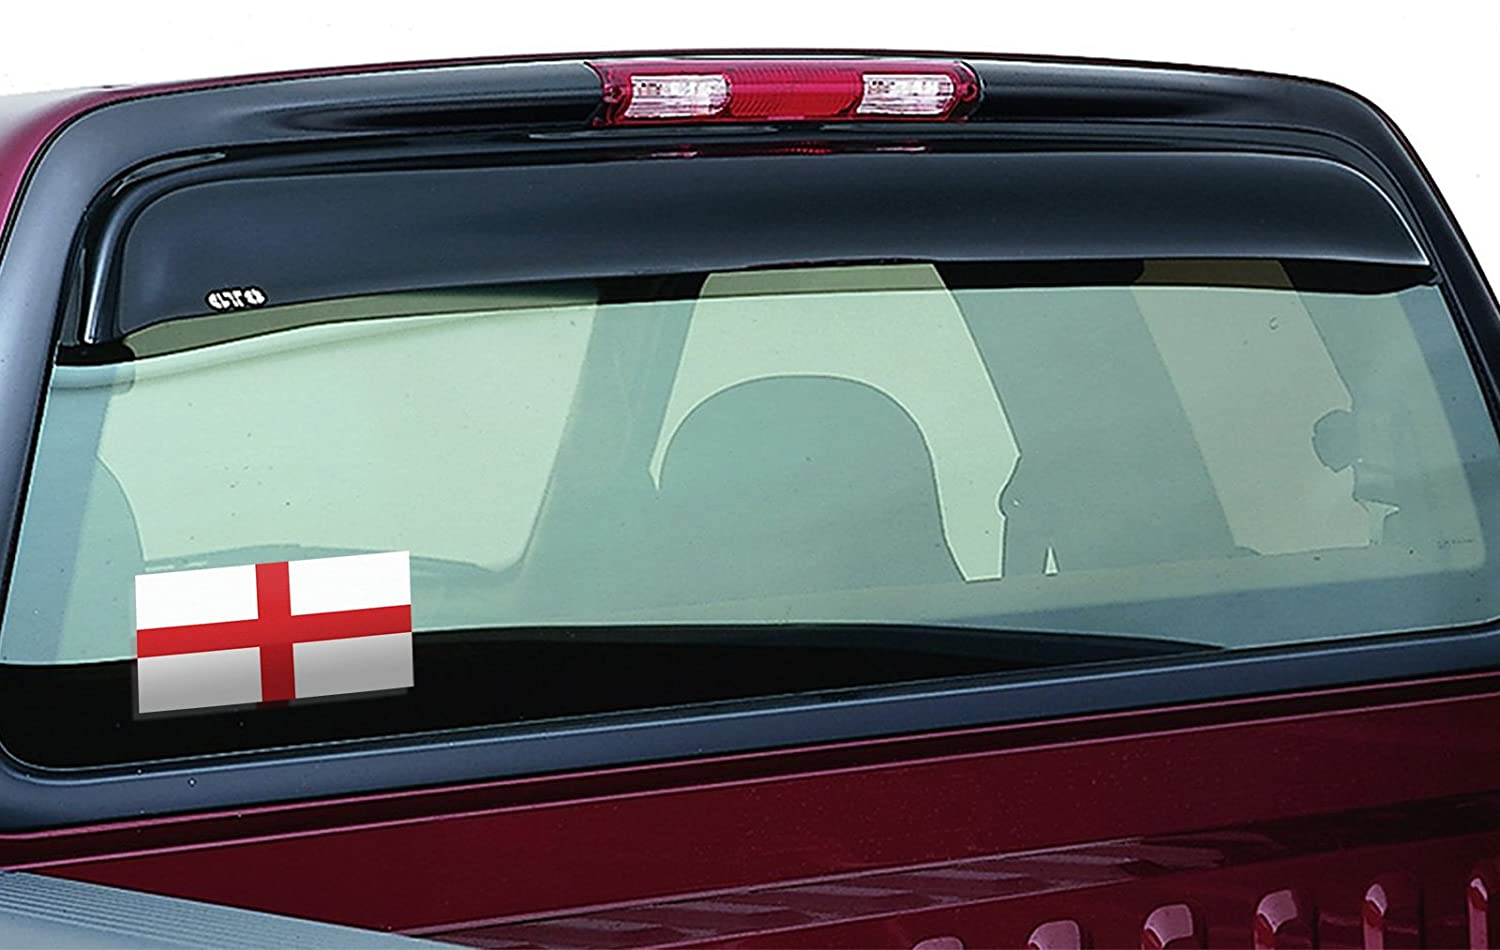 Desert Cactus England 4 Pack of 4 Inch Wide Country Flag Stickers Decal for Window Laptop Computer Vinyl Car Bumper Scrapbook 4